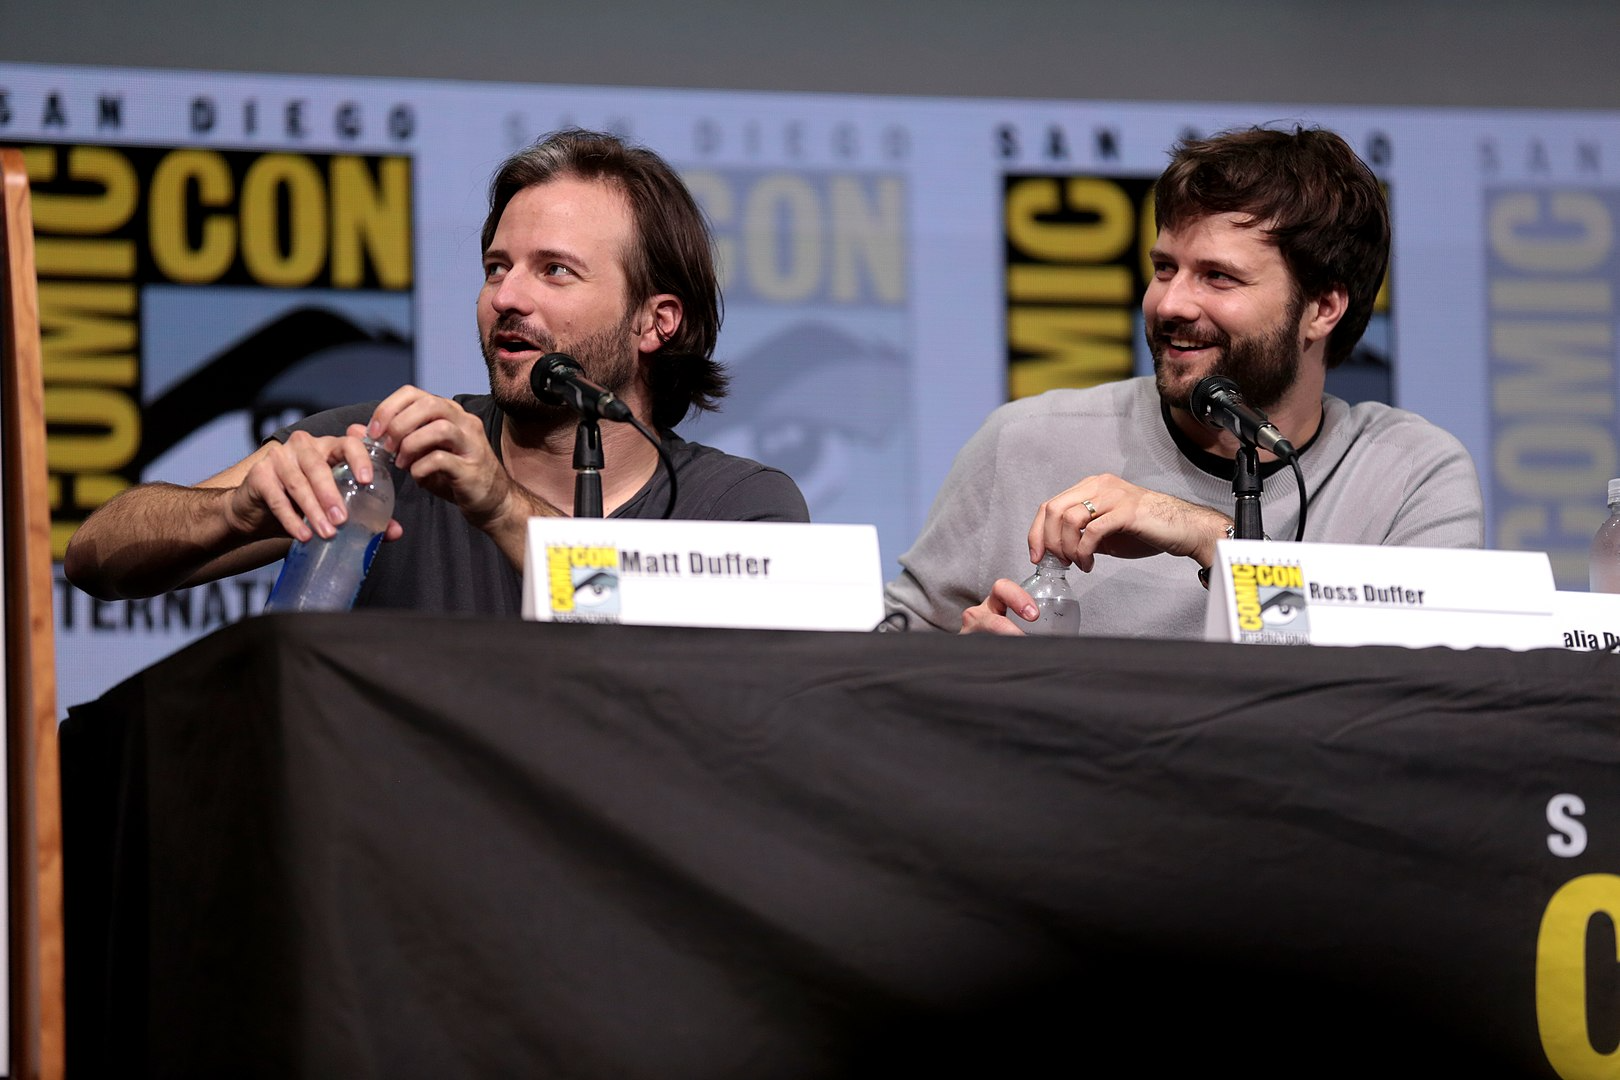 Matt and Ross Duffer, known professionally as the Duffer Brothers, at the 2017 San Diego Comic Con